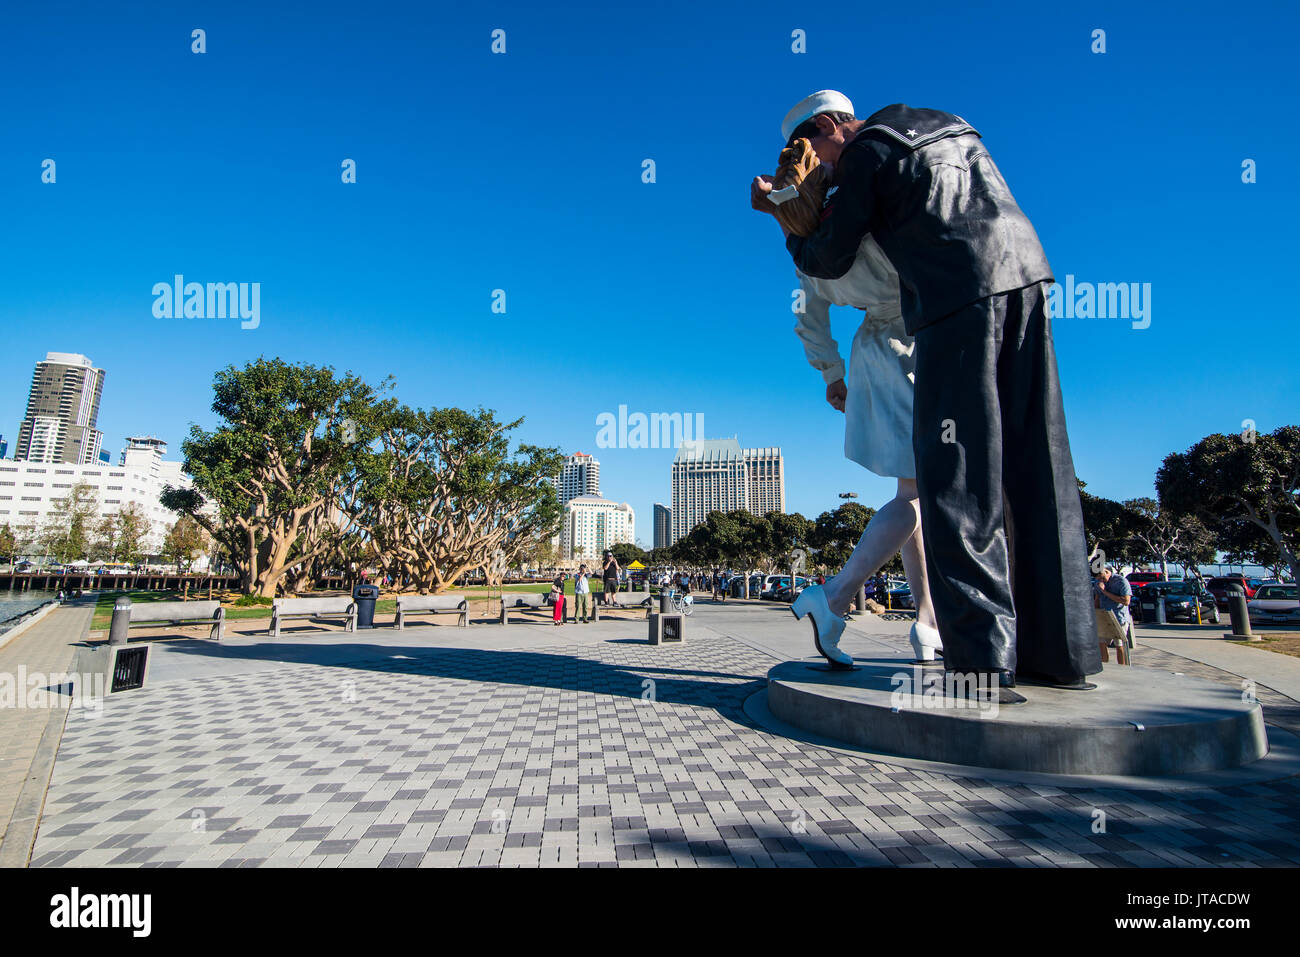 Embracing Peace memorial on the Ocean front of San Diego, California, United States of America, North America - Stock Image